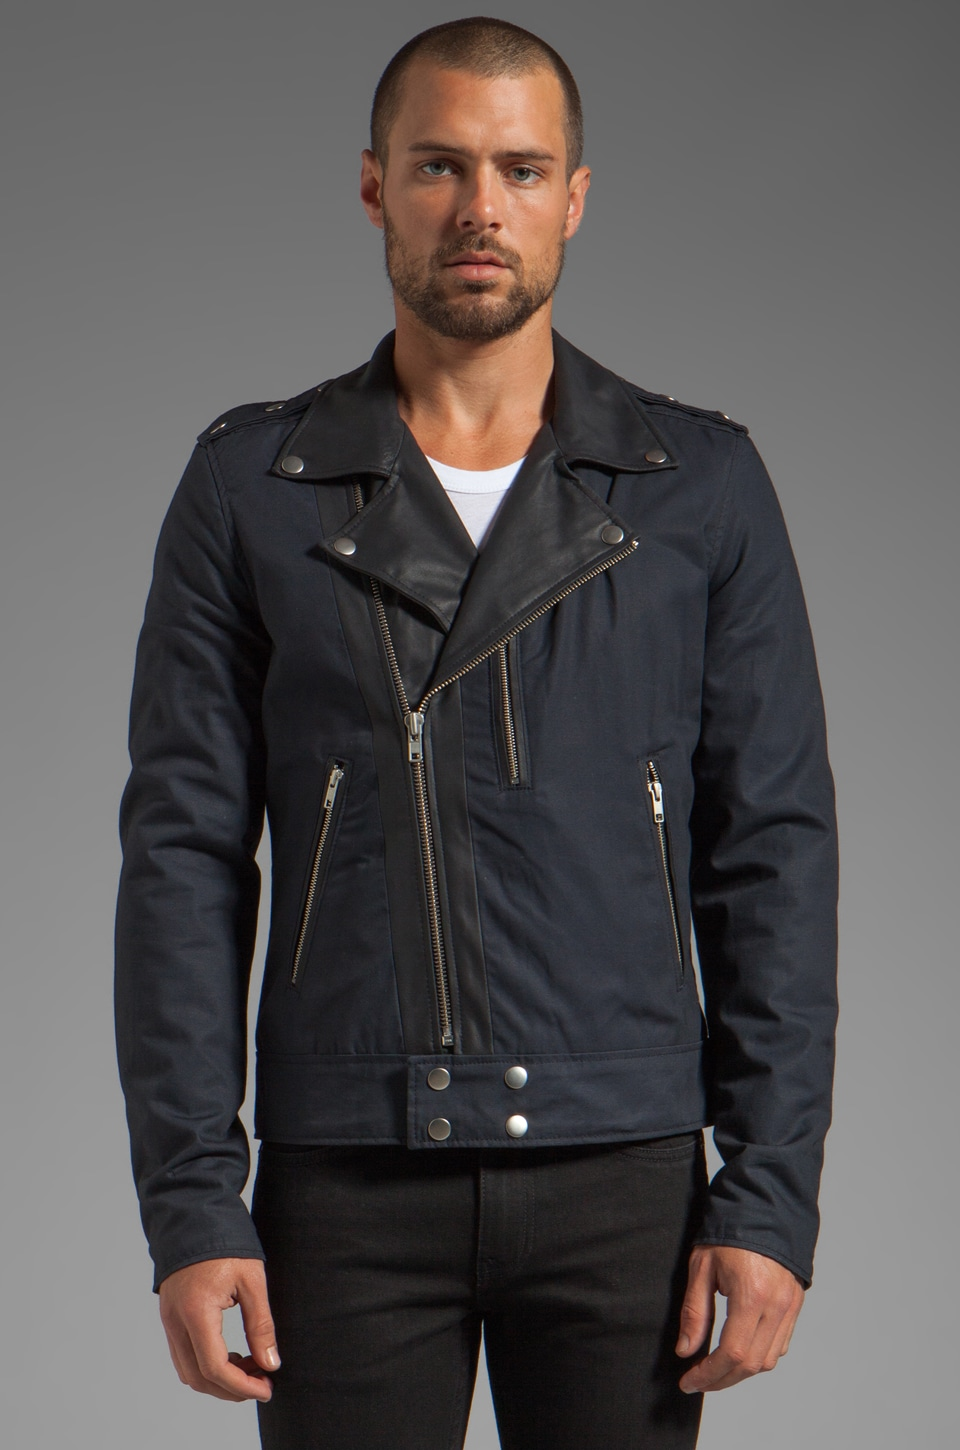 BLK DNM Jacket 50 in Navy Blue Black